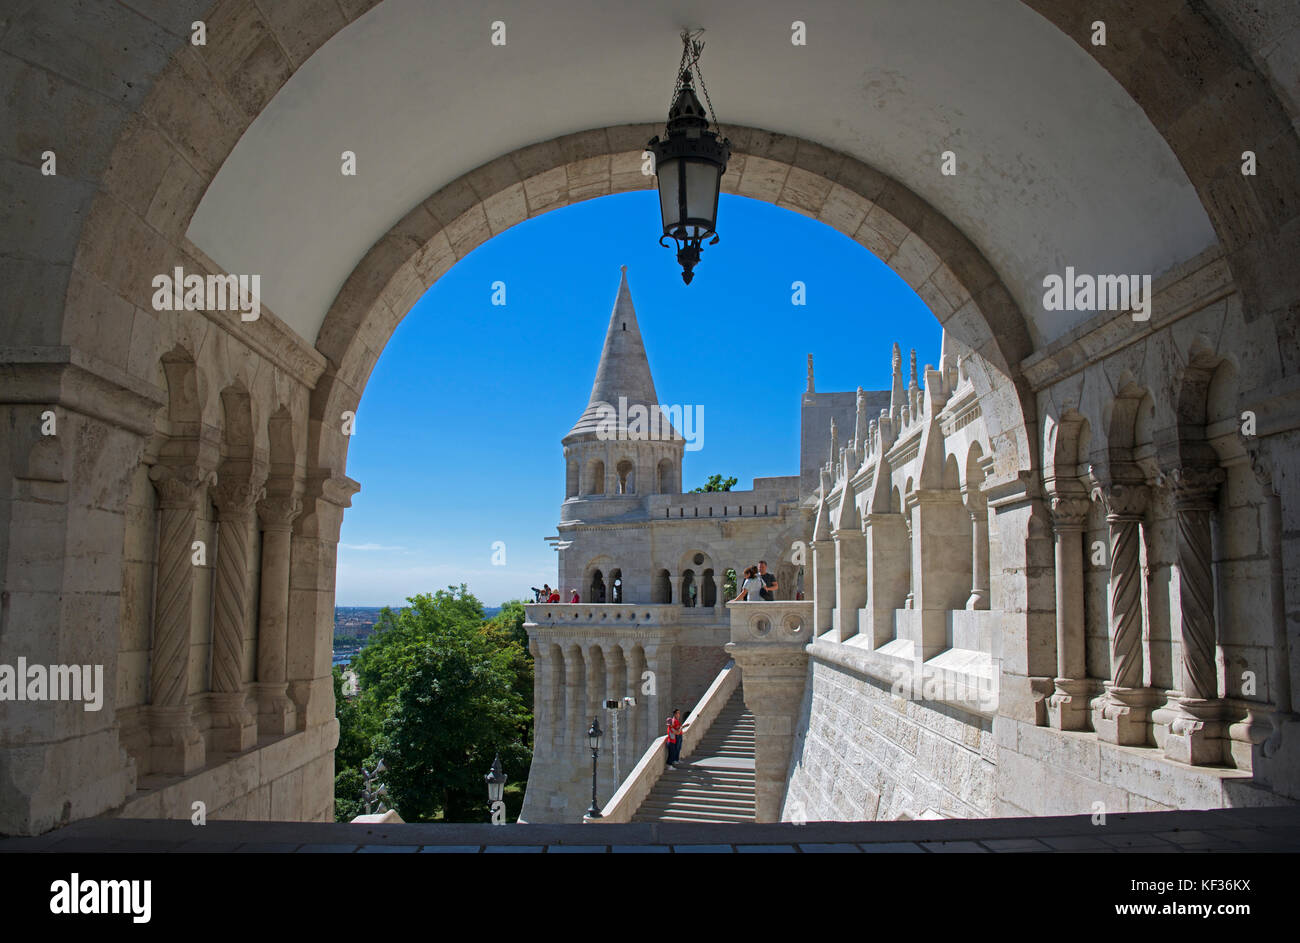 Fisherman's Bastion and turret though arch Castle District Upper Buda Budapest Hungary - Stock Image